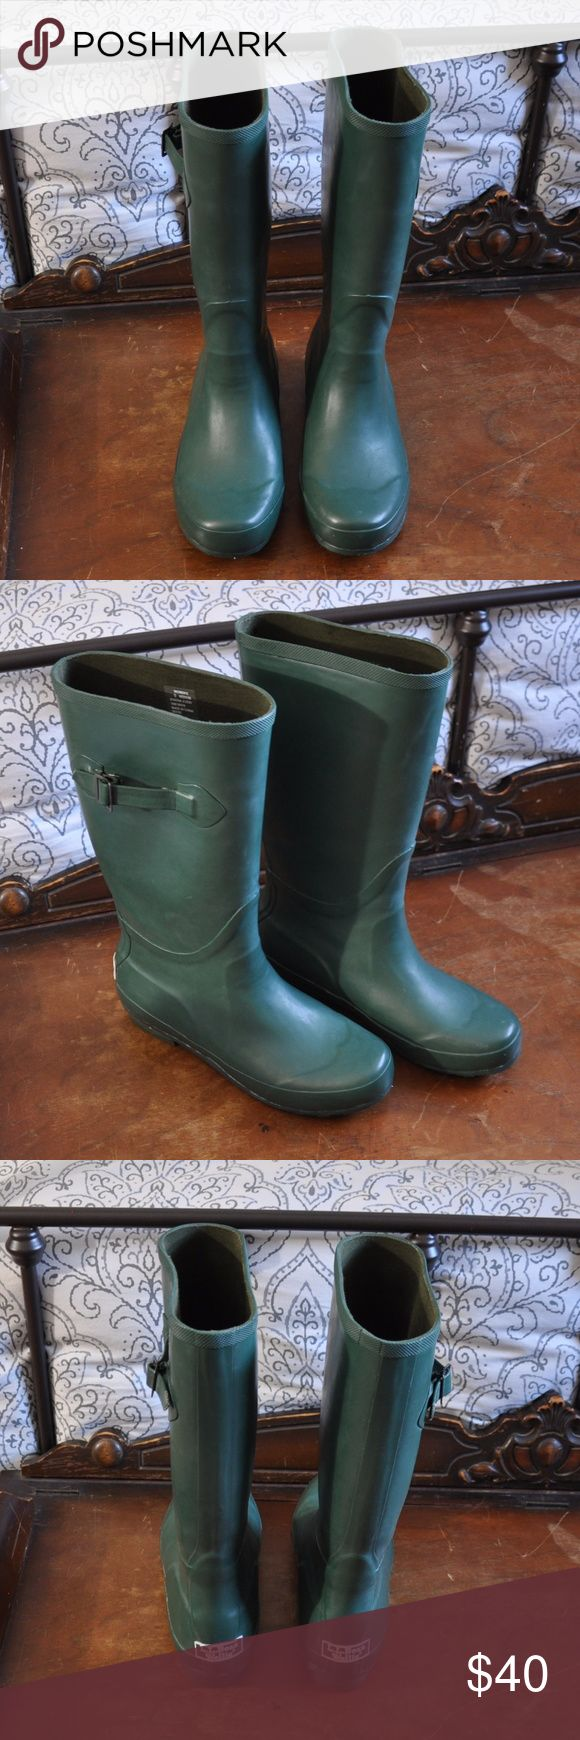 L.L. Bean Wellie Rain Boots Forest Green Rain Boots from L.L. Bean Lightly worn but in excellent condition! Size 9, calves are spacious and fit comfortably with plenty of room L.L. Bean Shoes Winter & Rain Boots